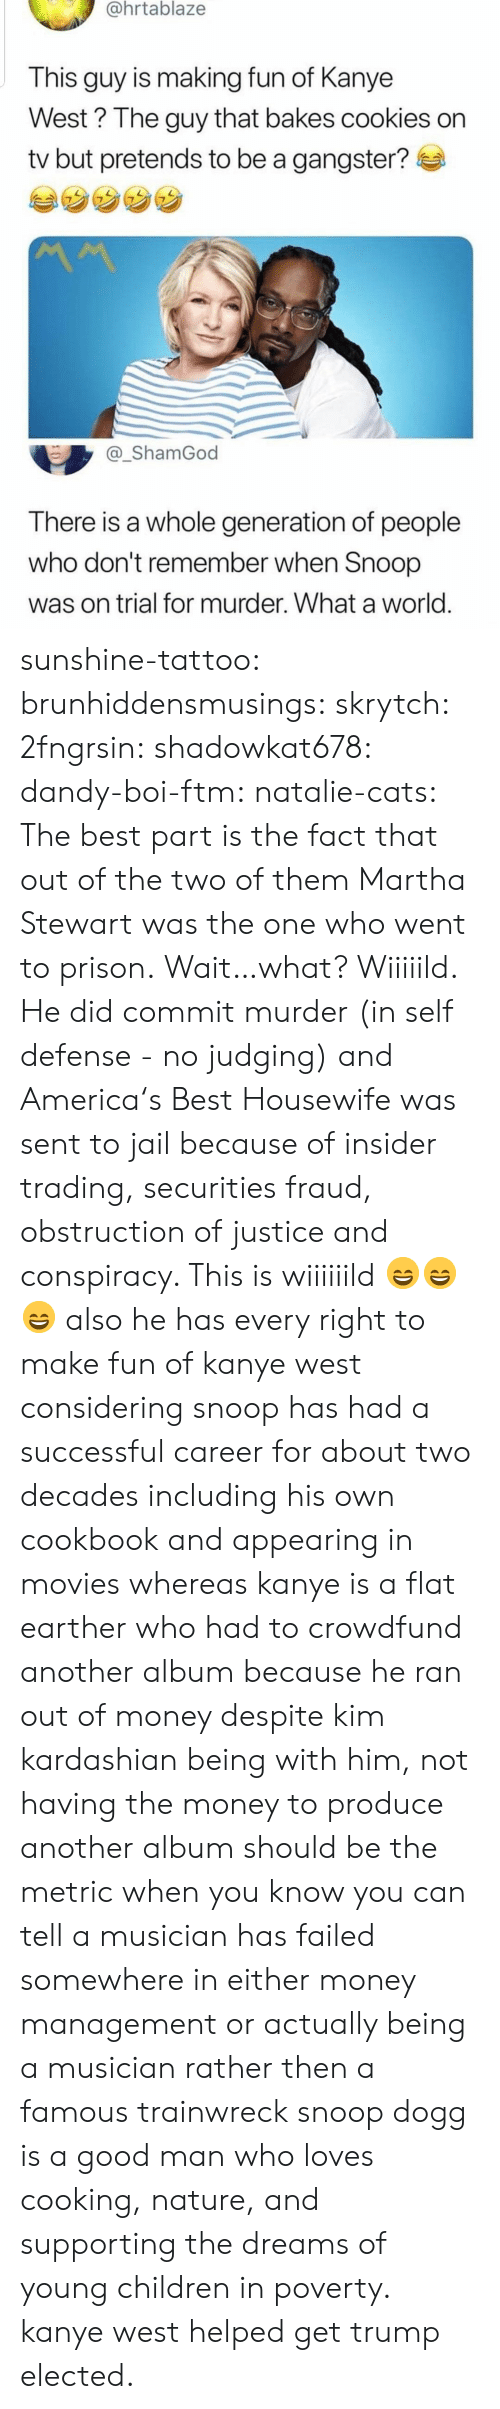 Kanye West: @hrtablaze  This guy is making fun of Kanye  West? The guy that bakes cookies on  tv but pretends to be a gangster?  _ShamGod  There is a whole generation of people  who don't remember when Snoop  was on trial for murder. What a world sunshine-tattoo: brunhiddensmusings:  skrytch:  2fngrsin:  shadowkat678:  dandy-boi-ftm:   natalie-cats:   The best part is the fact that out of the two of them Martha Stewart was the one who went to prison.   Wait…what?   Wiiiiild. He did commit murder (in self defense - no judging) and America's Best Housewife was sent to jail because of insider trading, securities fraud, obstruction of justice and conspiracy. This is wiiiiiild 😄😄😄    also he has every right to make fun of kanye west considering snoop has had a successful career for about two decades including his own cookbook and appearing in movies whereas kanye is a flat earther who had to crowdfund another album because he ran out of money despite kim kardashian being with him, not having the money to produce another album should be the metric when you know you can tell a musician has failed somewhere in either money management or actually being a musician rather then a famous trainwreck   snoop dogg is a good man who loves cooking, nature, and supporting the dreams of young children in poverty. kanye west helped get trump elected.